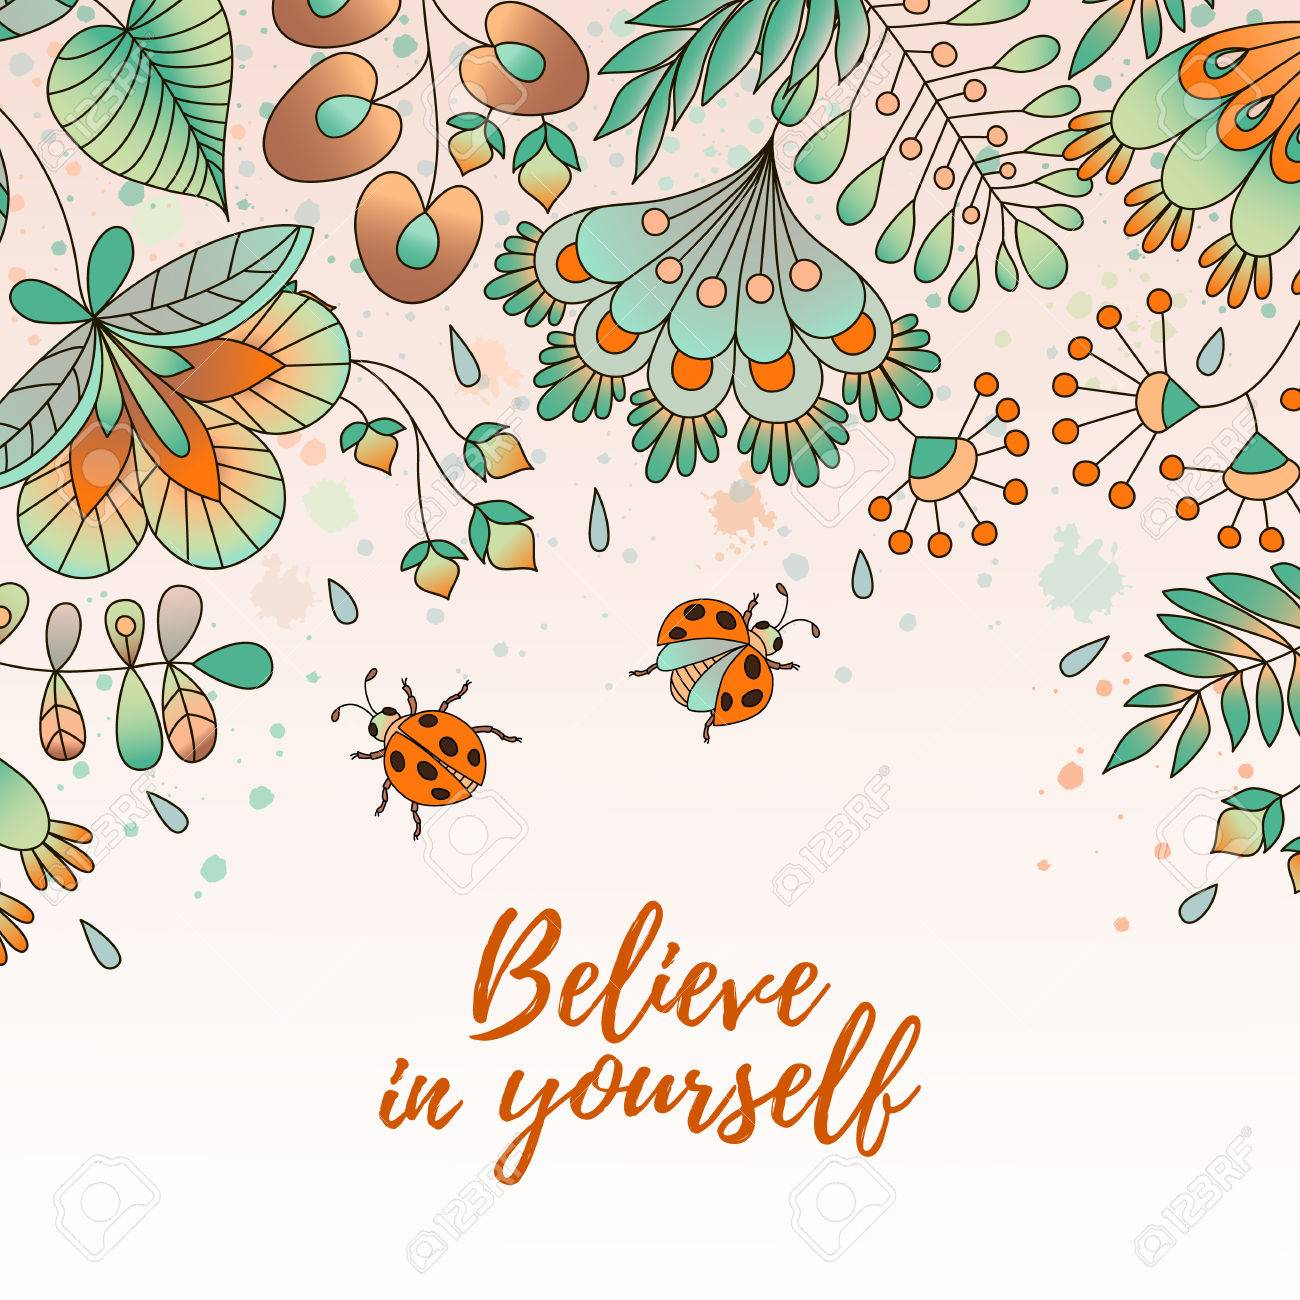 Card with flowers and ladybugs cute colorful floral background card with flowers and ladybugs cute colorful floral background believe in yourself perfect solutioingenieria Choice Image